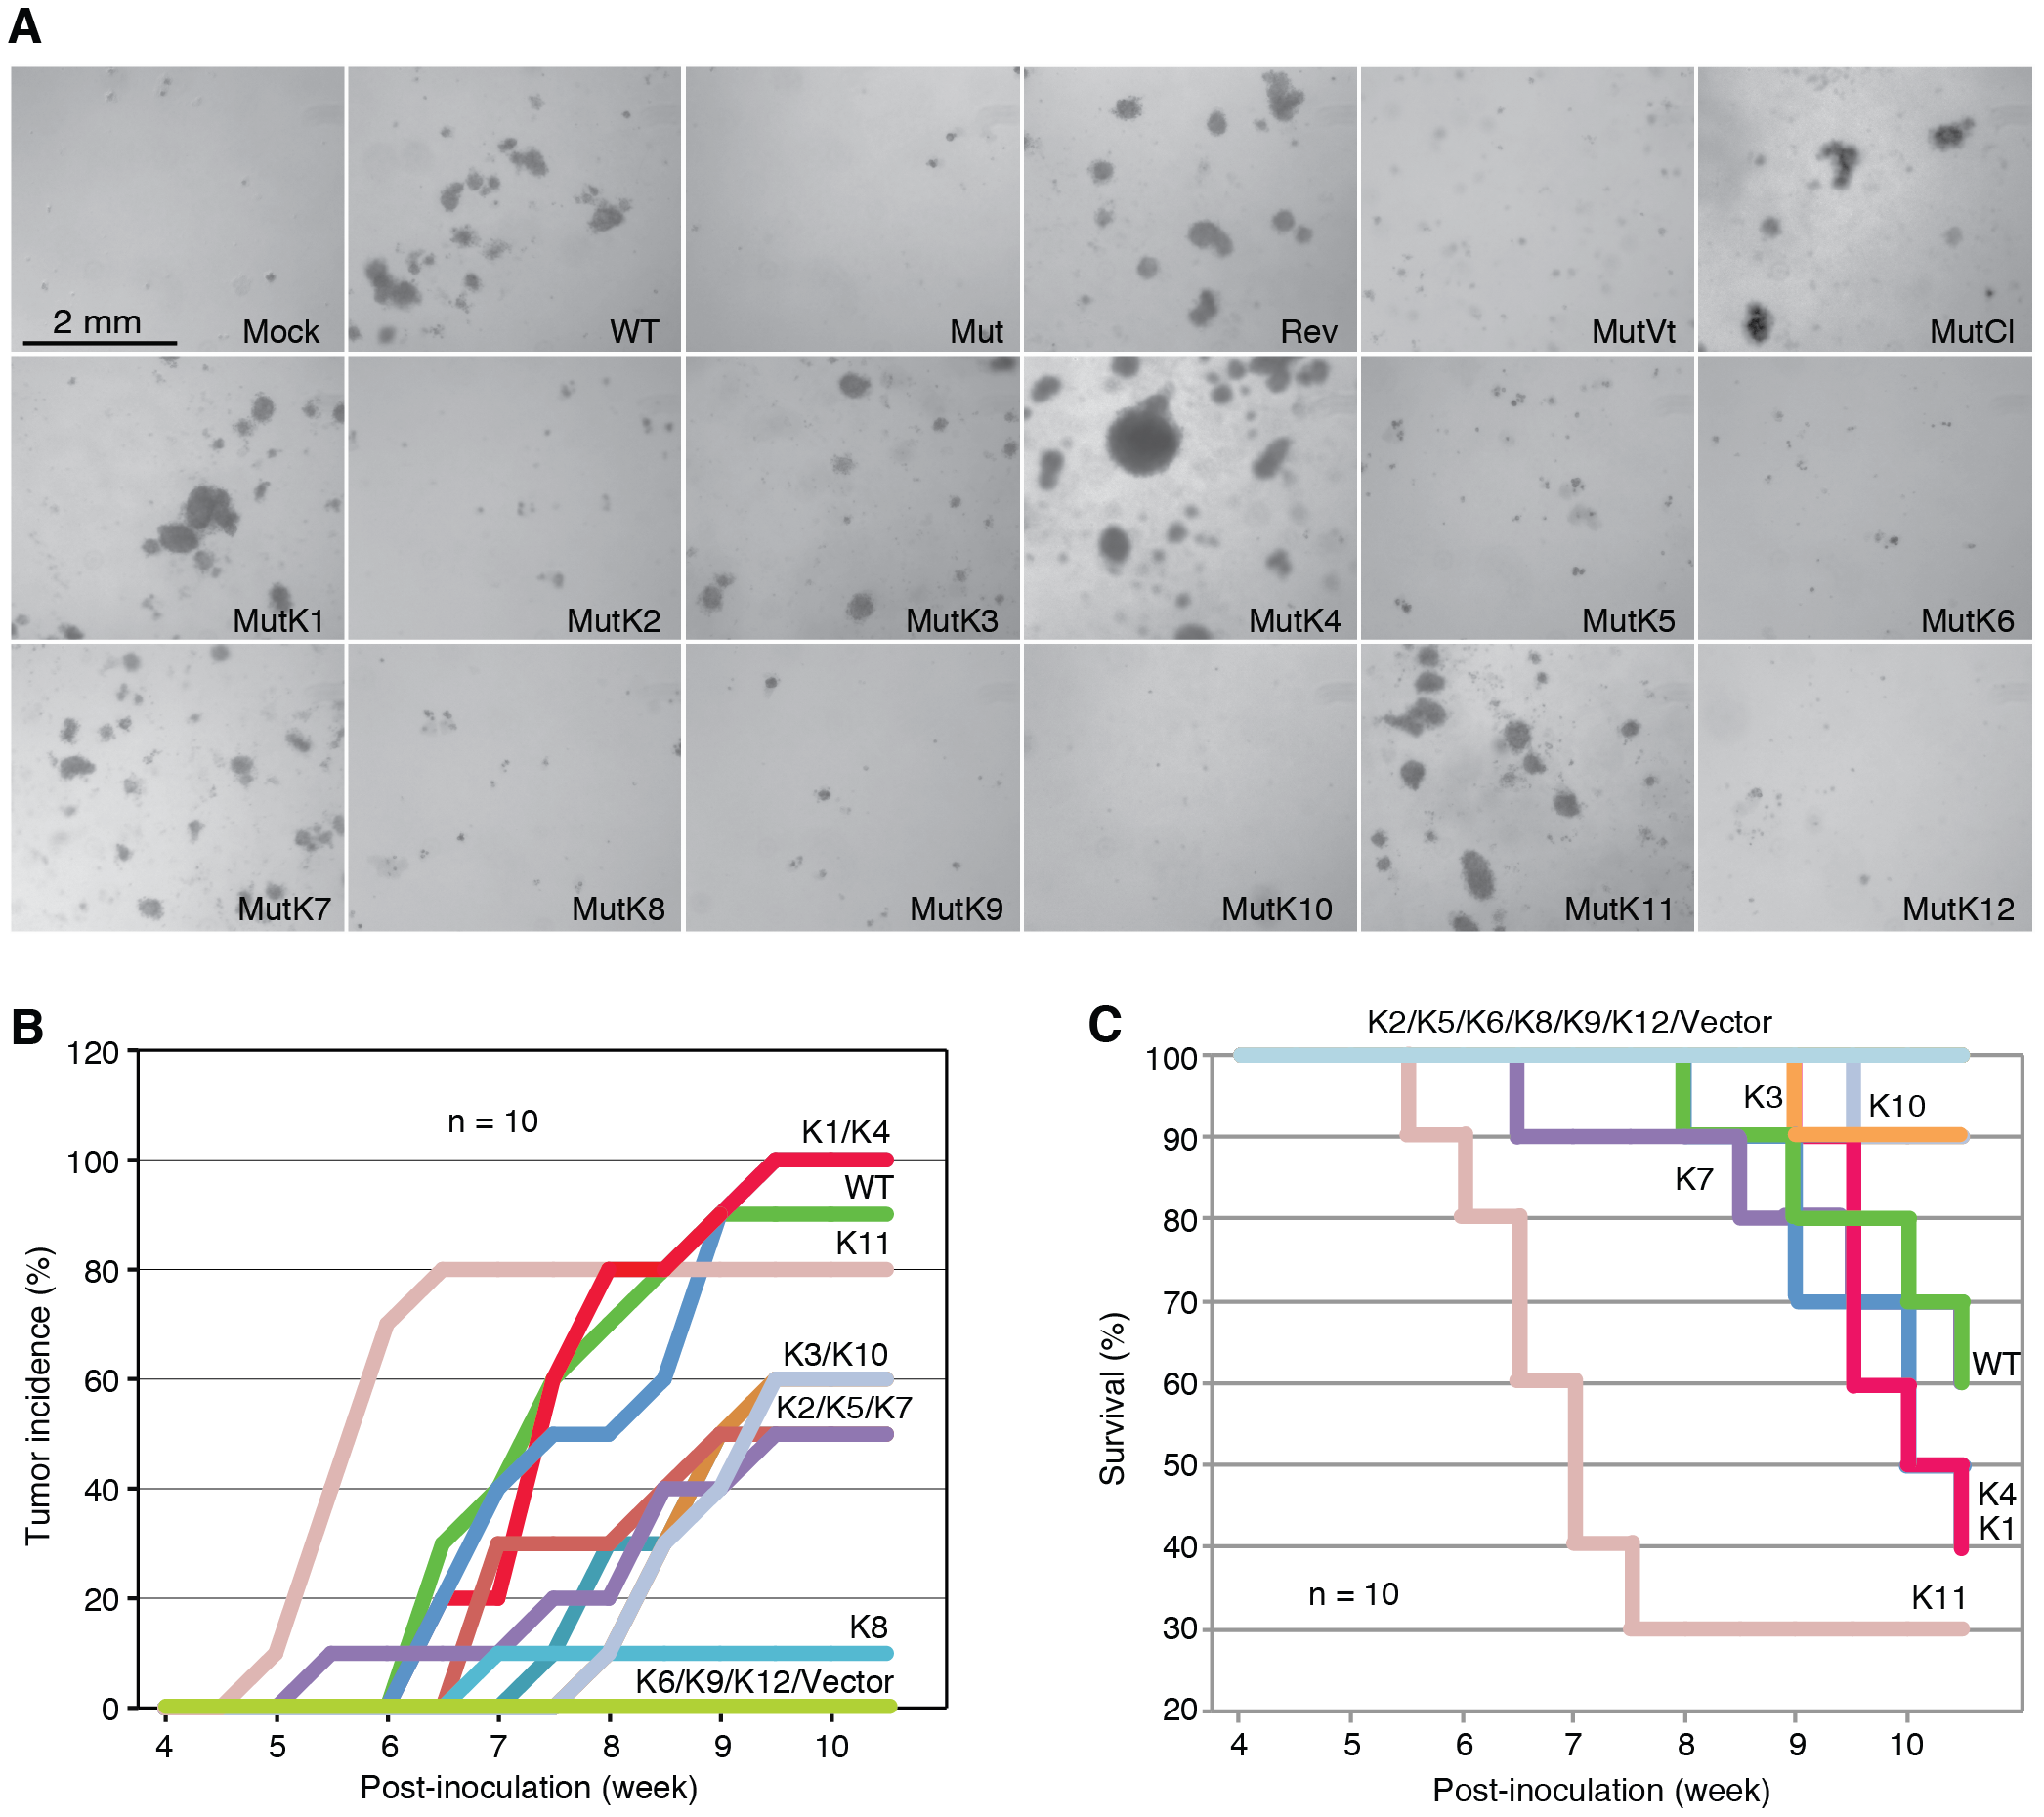 Multiple KSHV miRs rescue cellular transformation and tumorigenesis of the Mut virus.